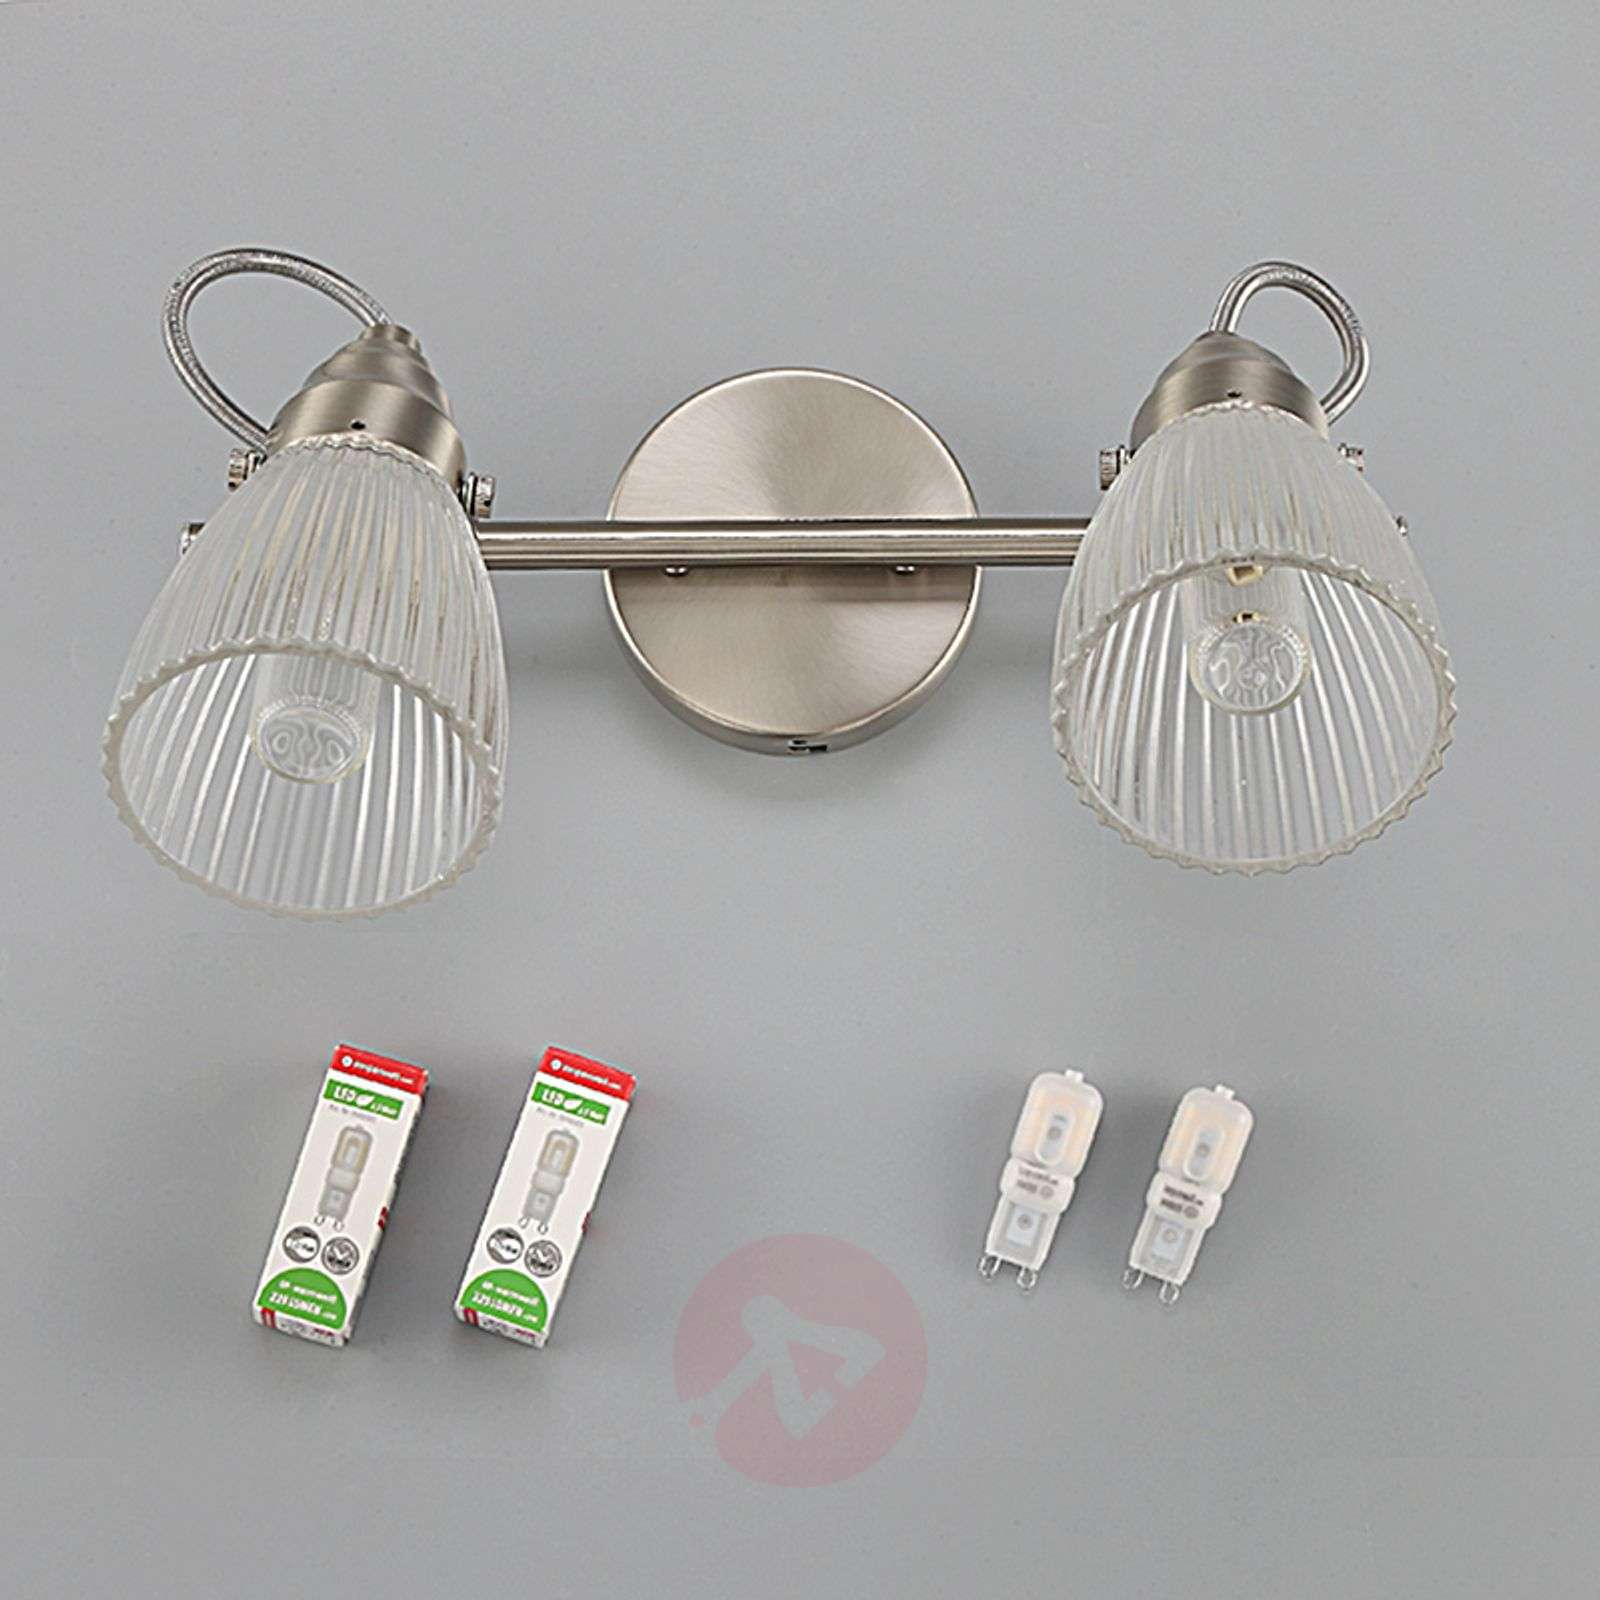 Kara bathroom wall lamp with fluted glass and LED-9620682-011